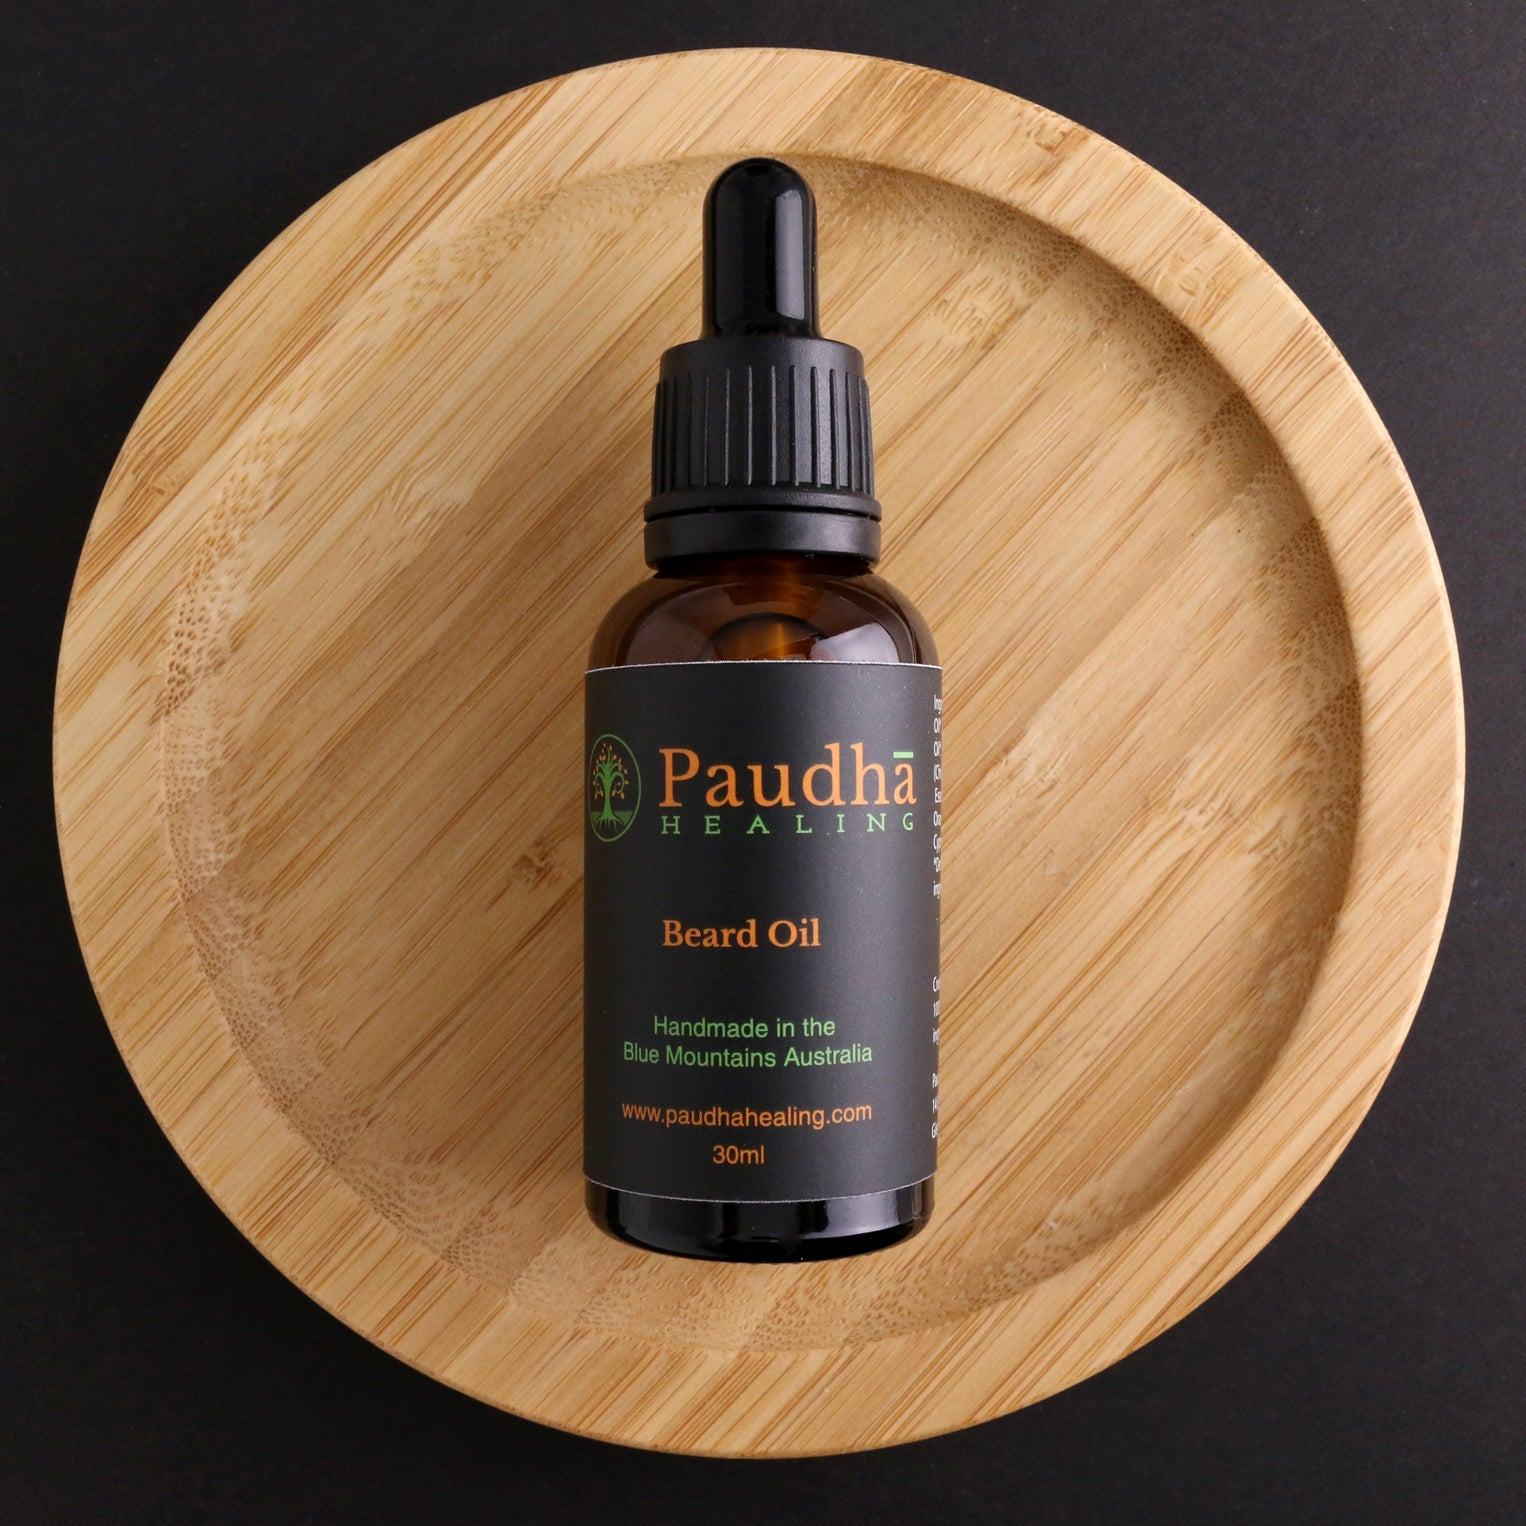 Paudha Healing Beard oil